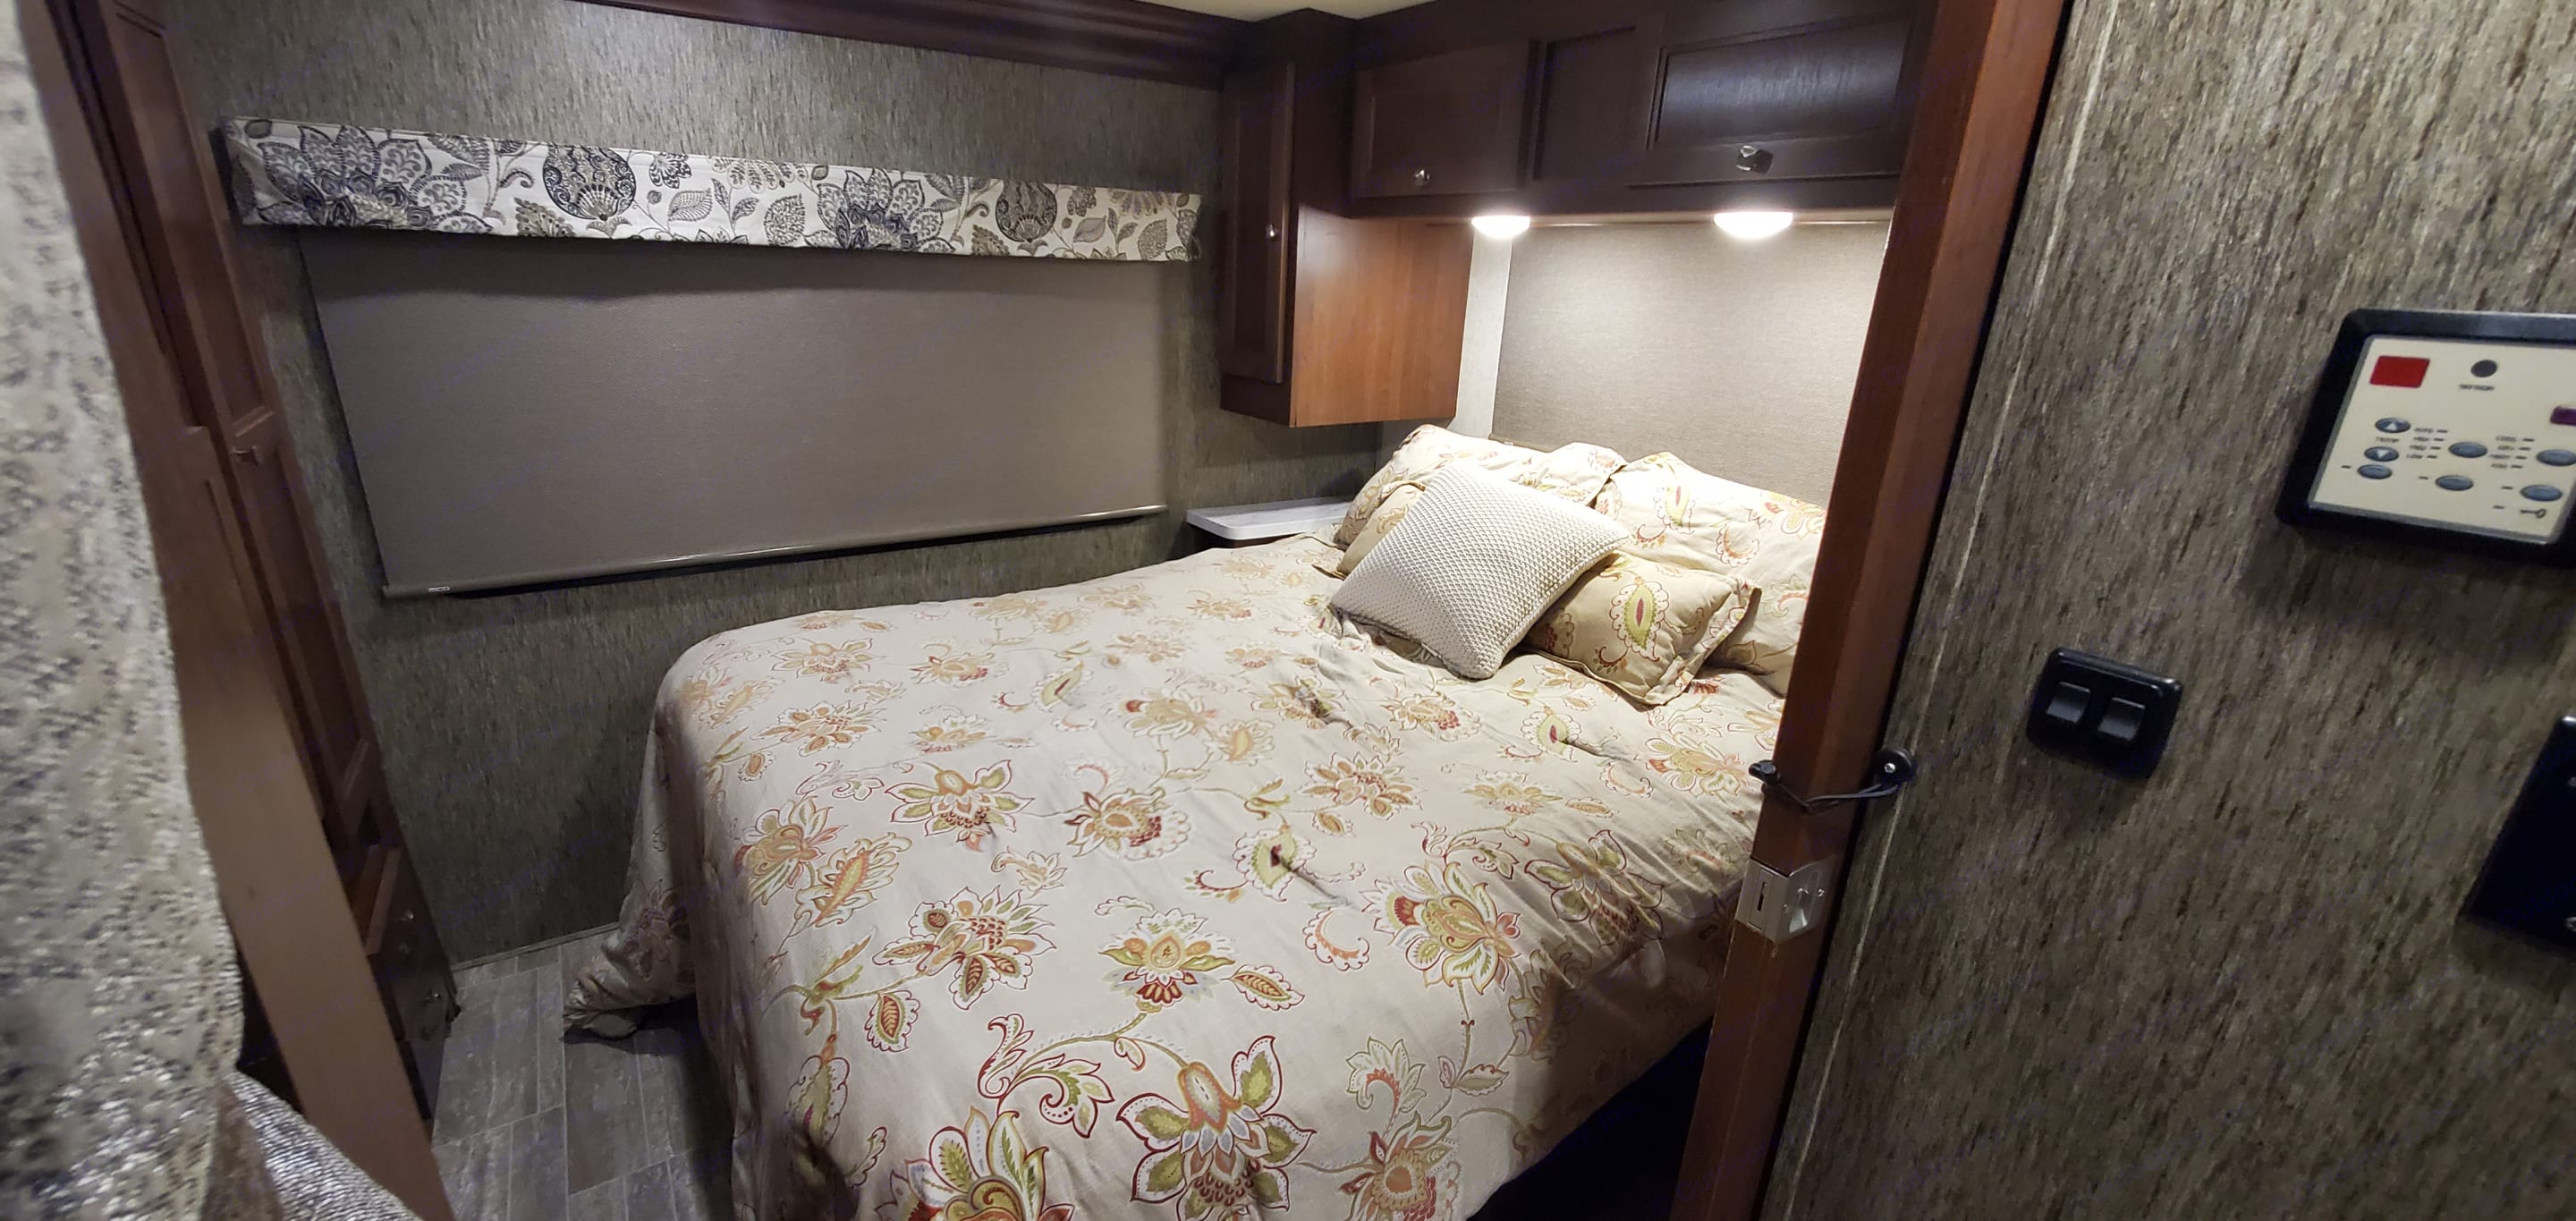 Bedroom - Bedding may be different during your stay. Forest River Forester 2019